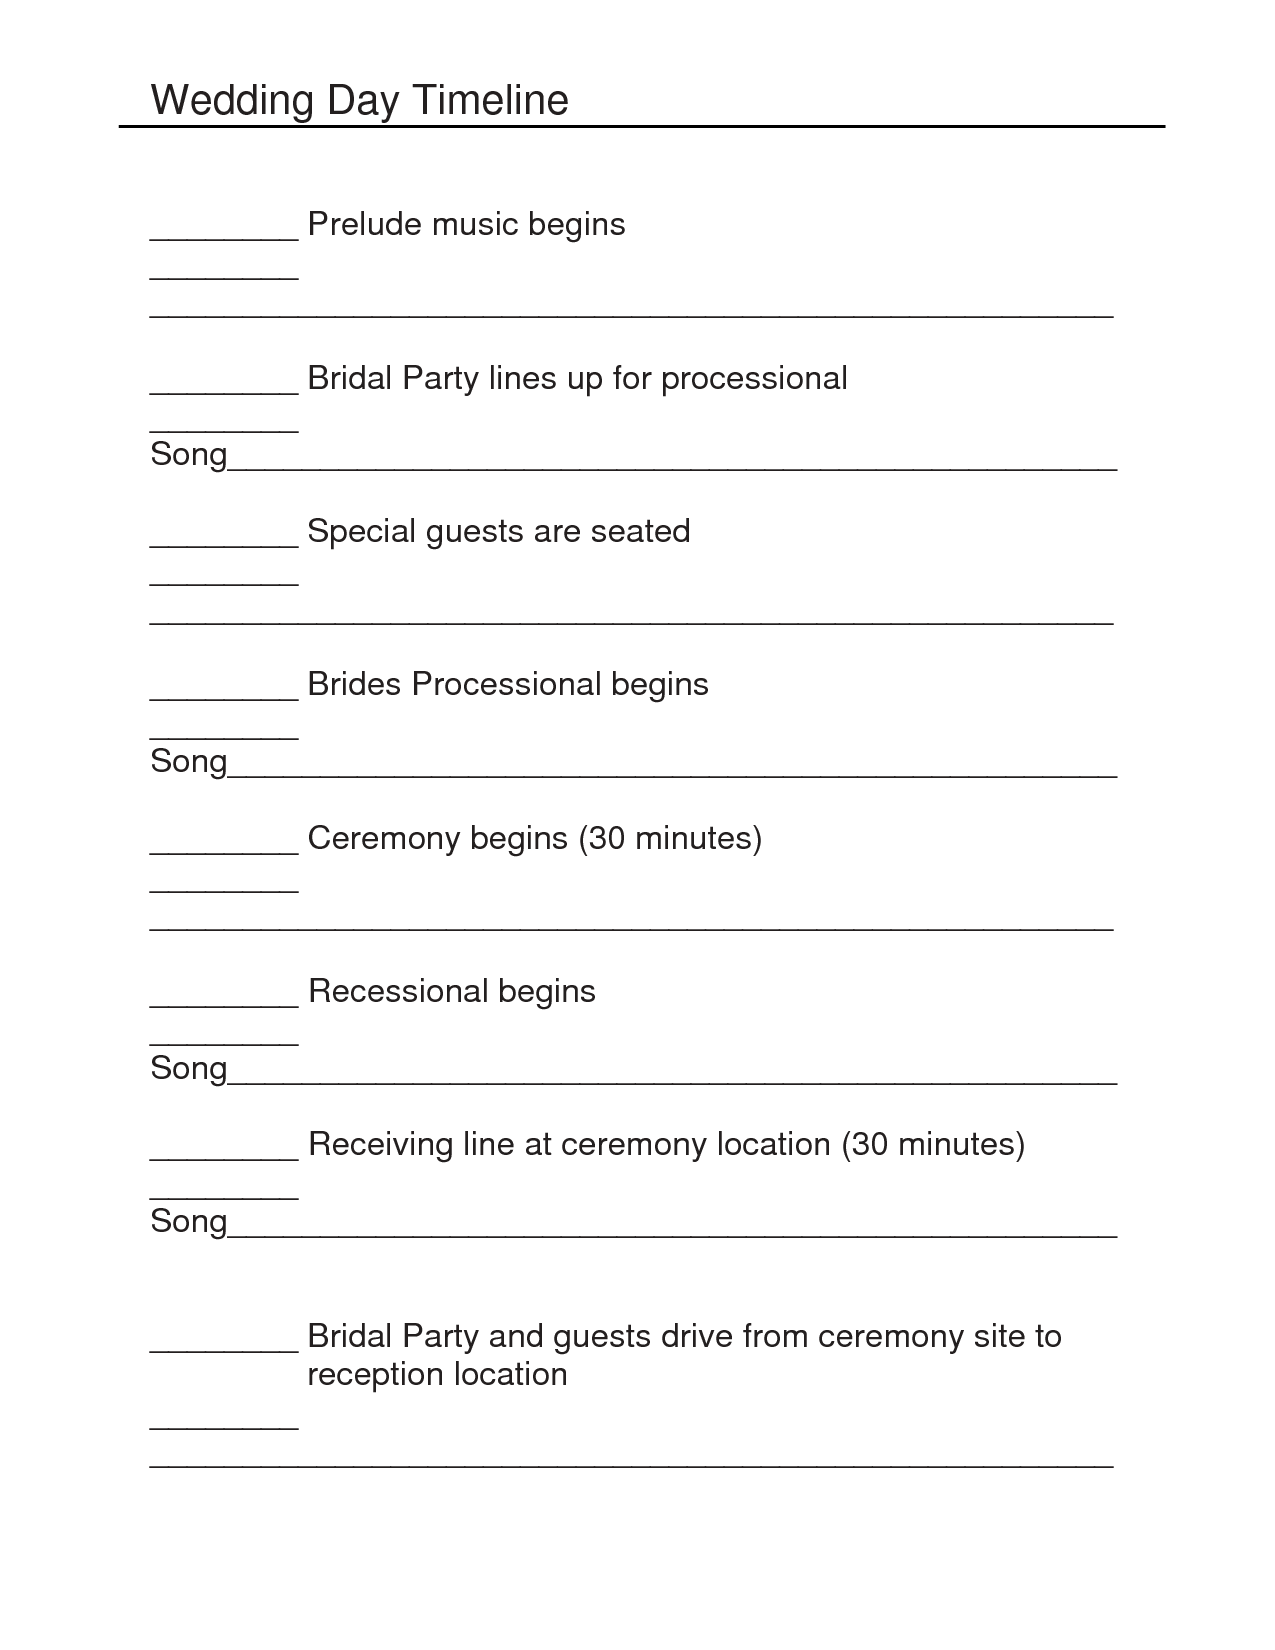 Outline For Formal Wedding Itinerary  Wedding Day Timeline